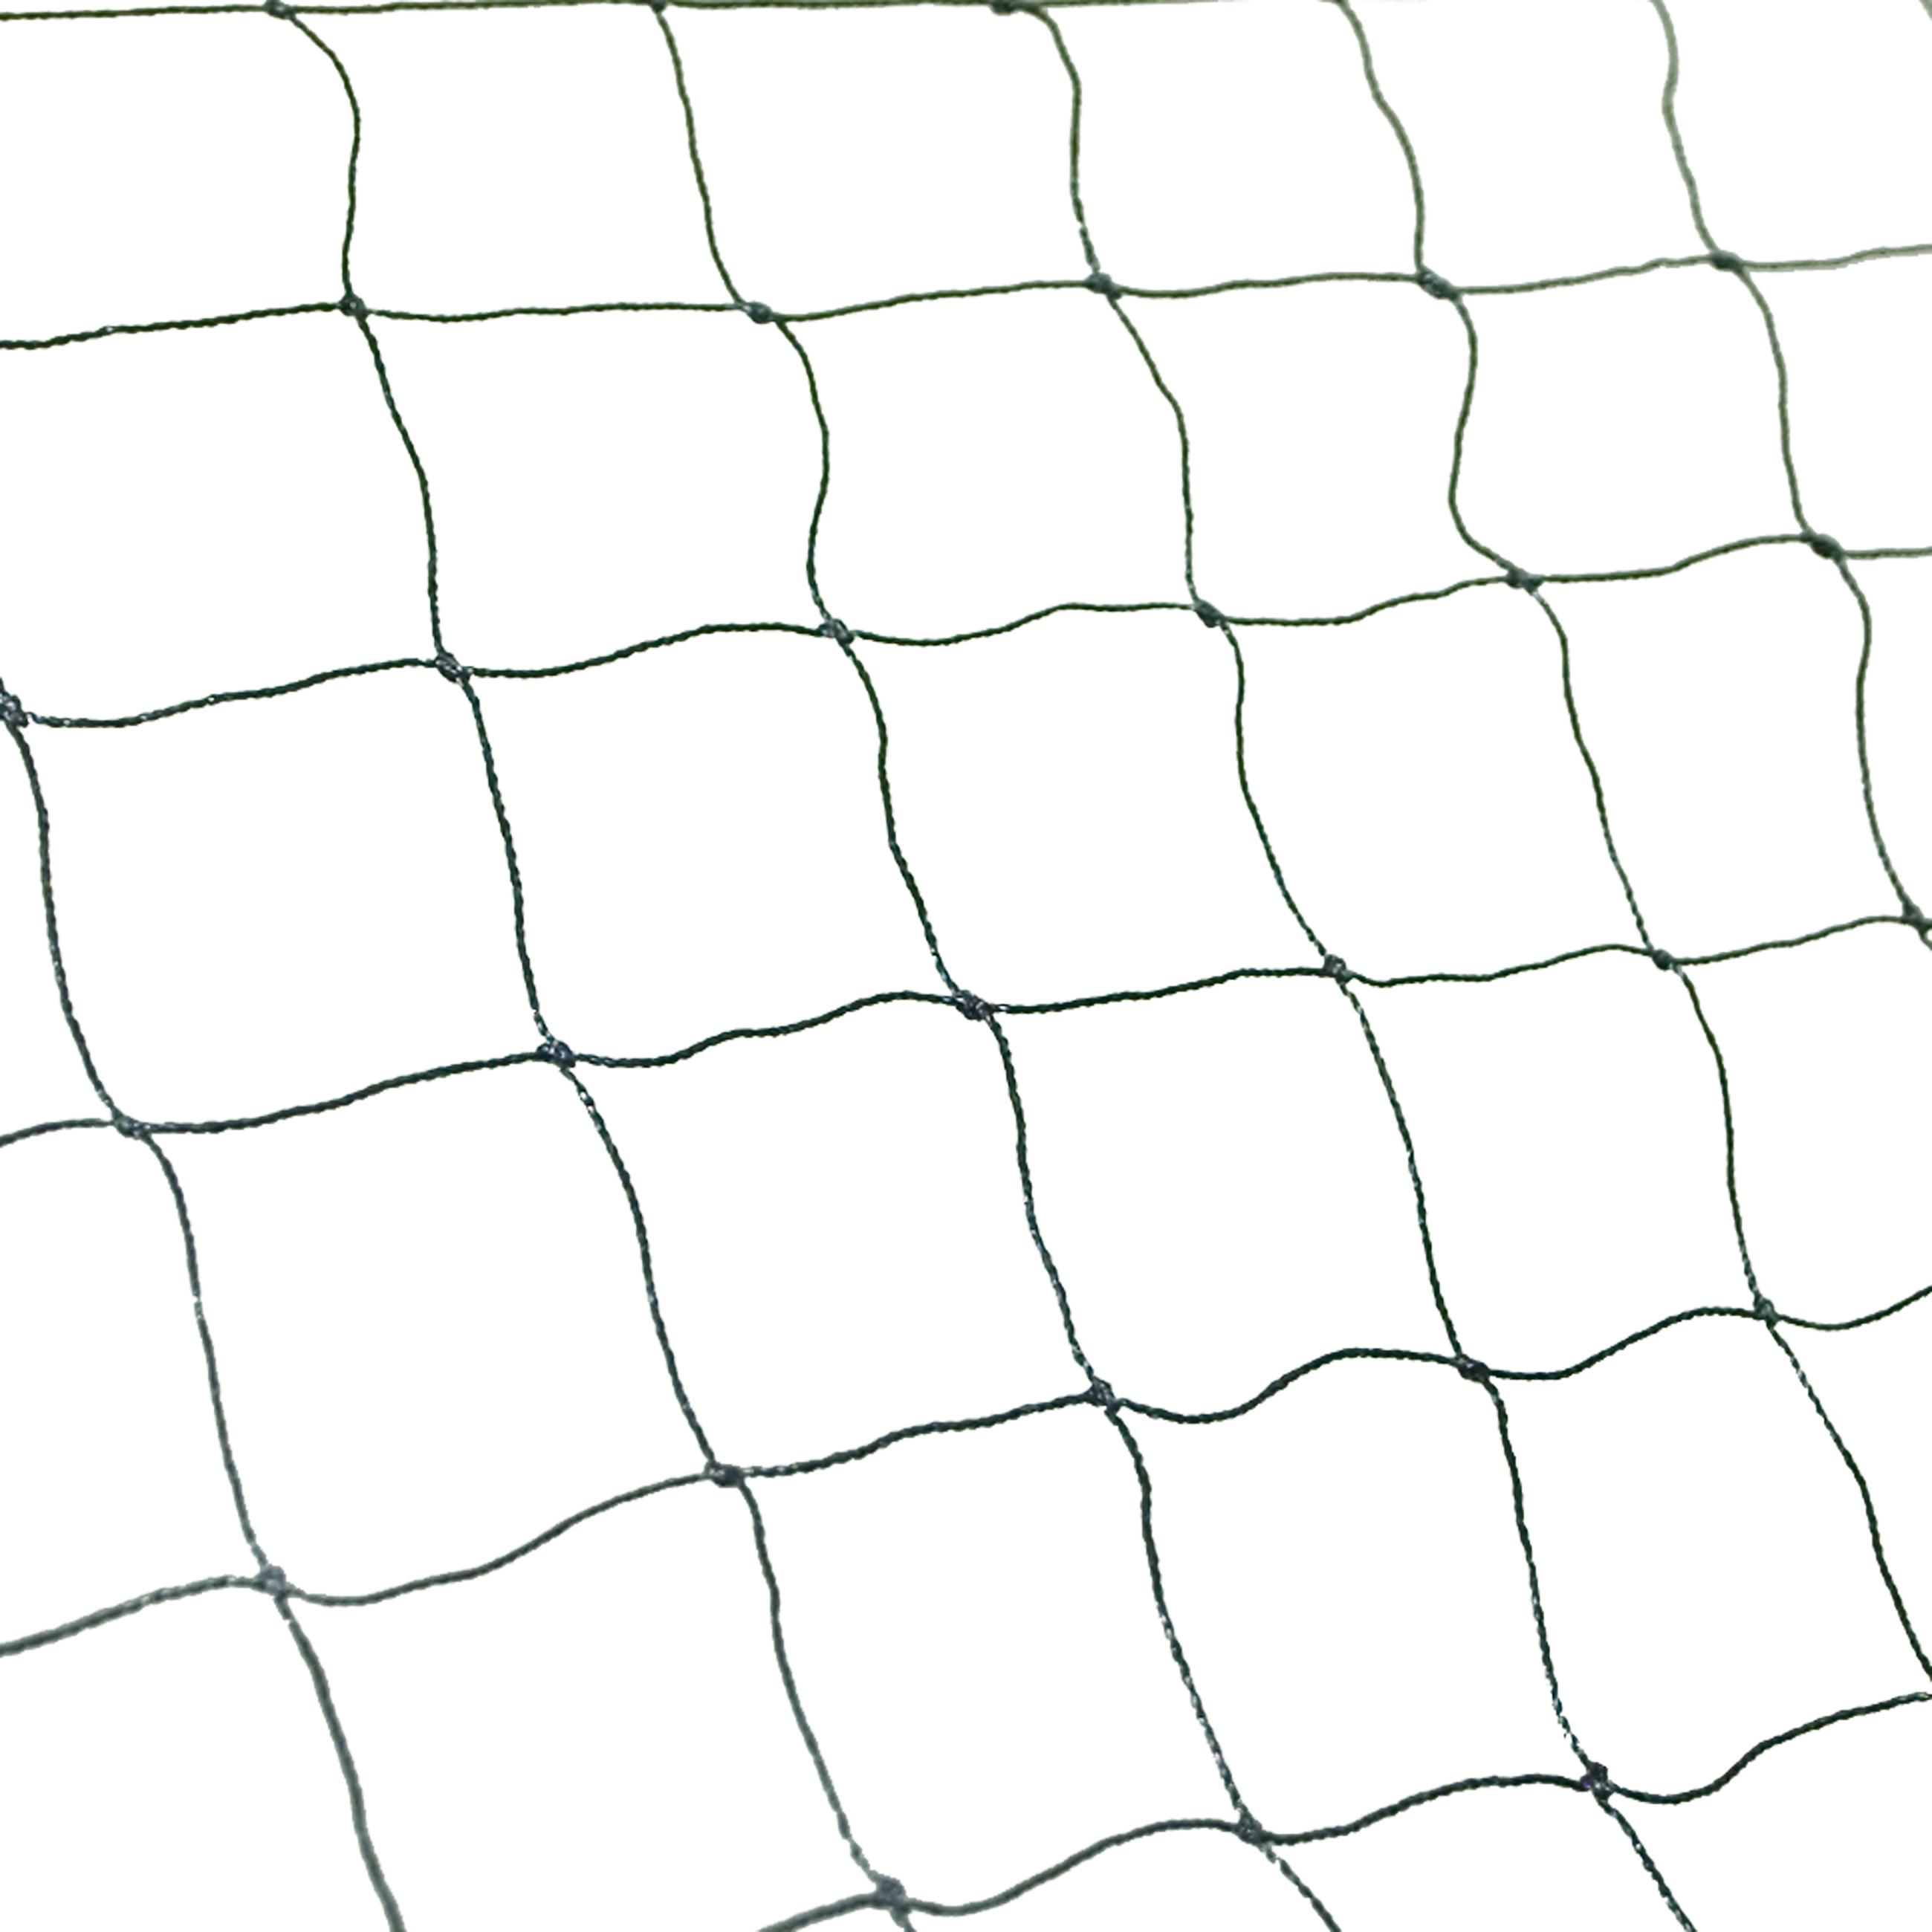 Best Choice Products Bird Netting 25' X 50' Net Netting For Bird Poultry Aviary Game Pens New